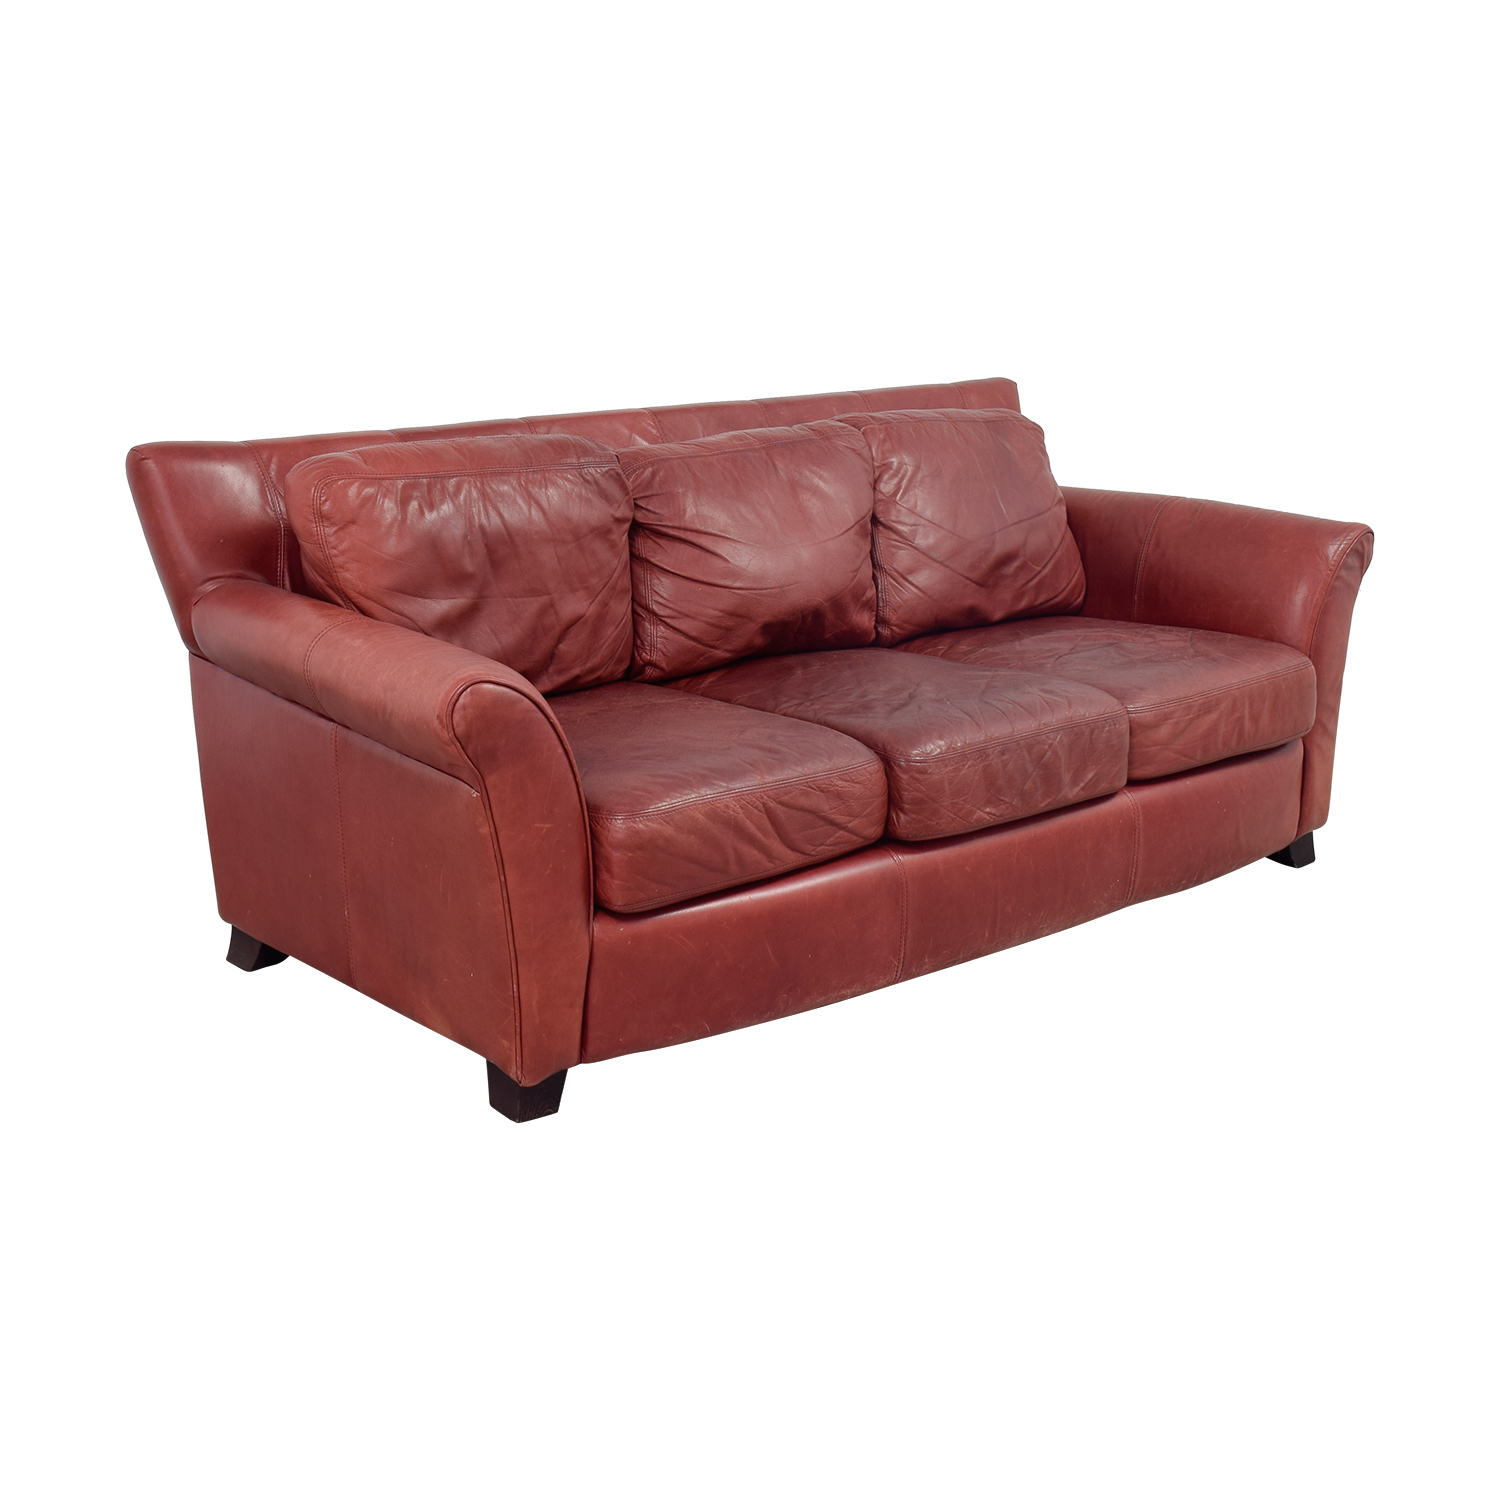 Palliser Palliser Red Leather Three-Cushion Sofa second hand